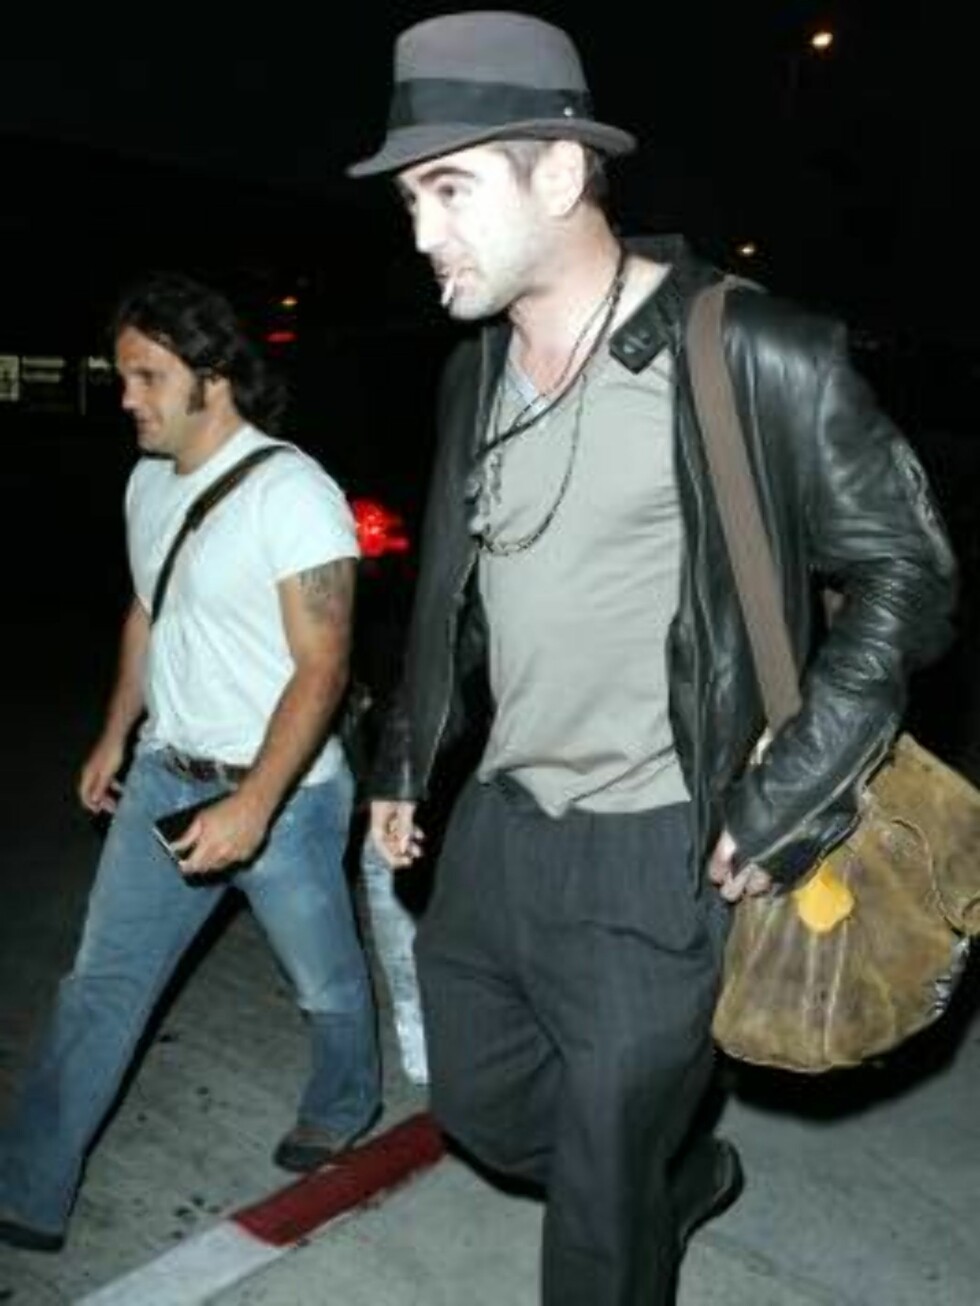 Colin Farrell ot of rehab  arriving at LAX with hat and boots. June 3, 2006 X17agency exclusive / ALL OVER PRESS Foto: All Over Press